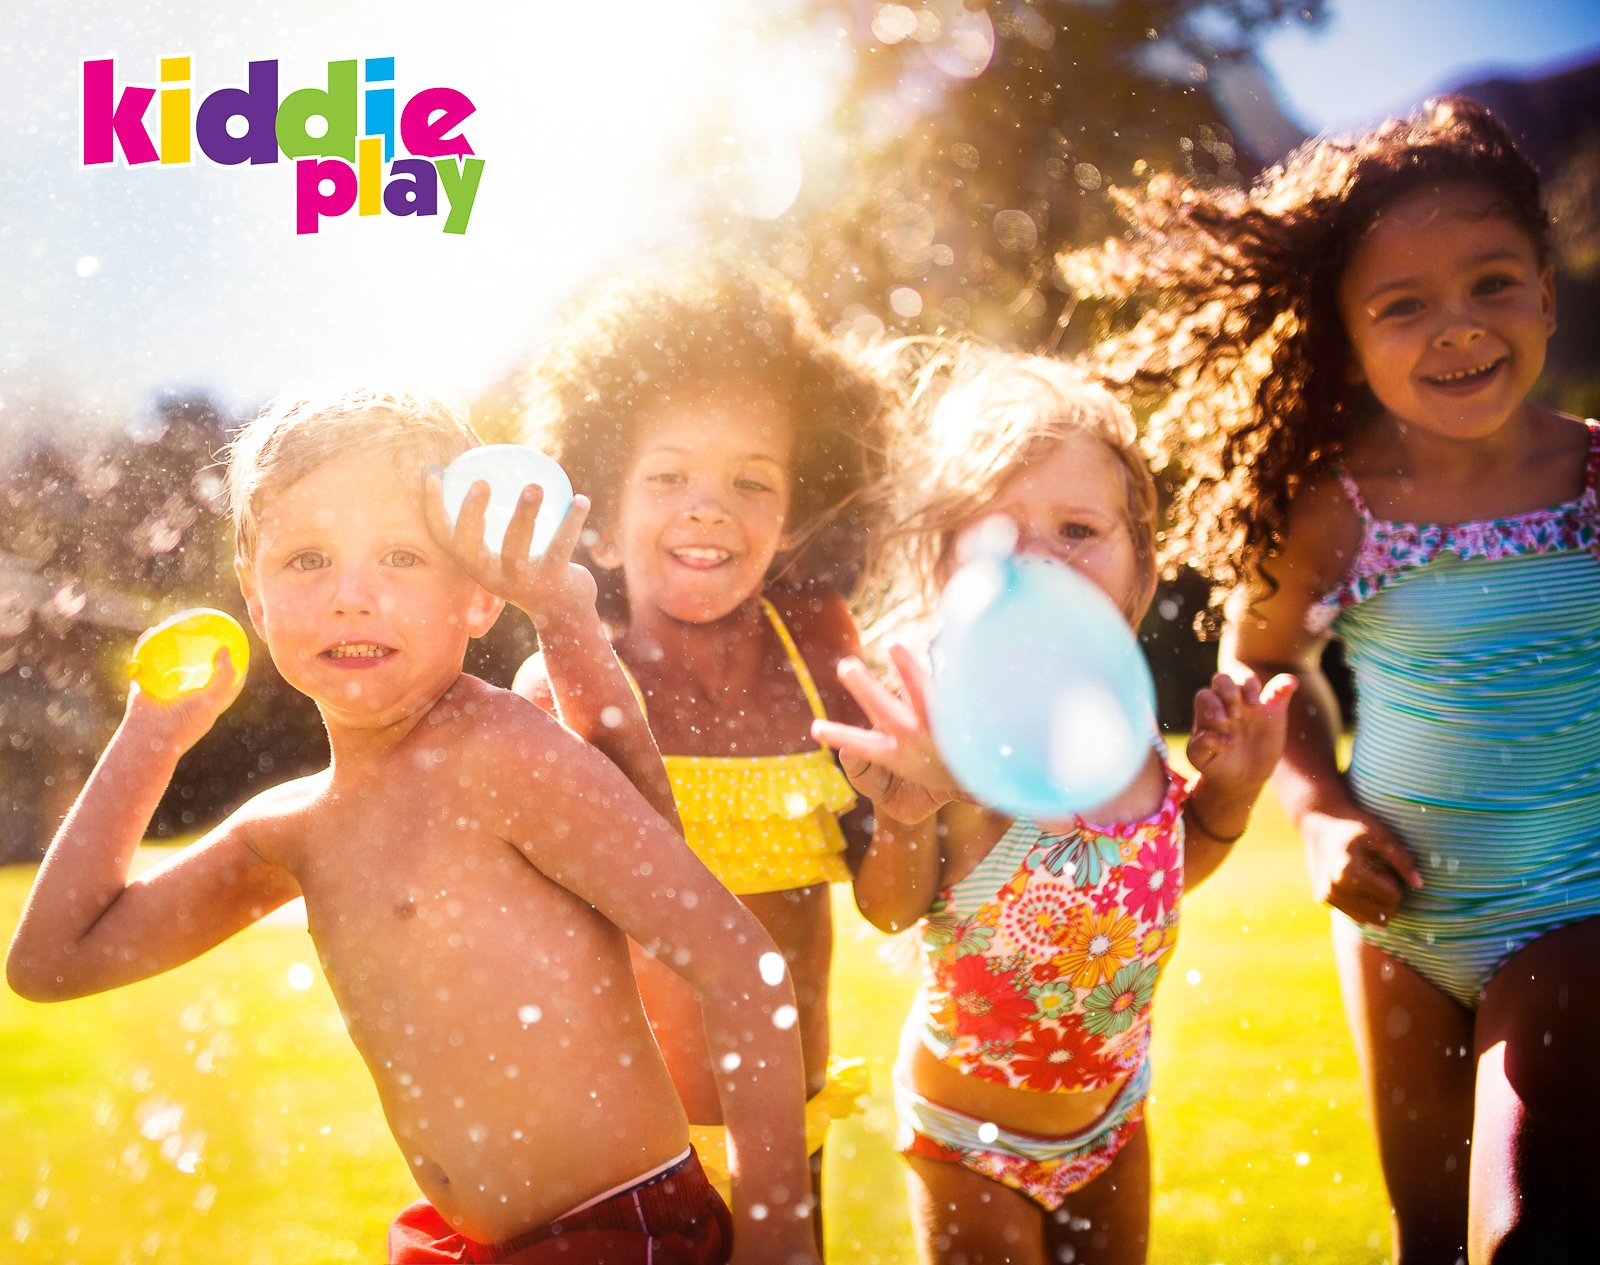 Kiddie Play Water Balloons for Kids with Filler Pump (250 Balloons) by Kiddie Play (Image #2)